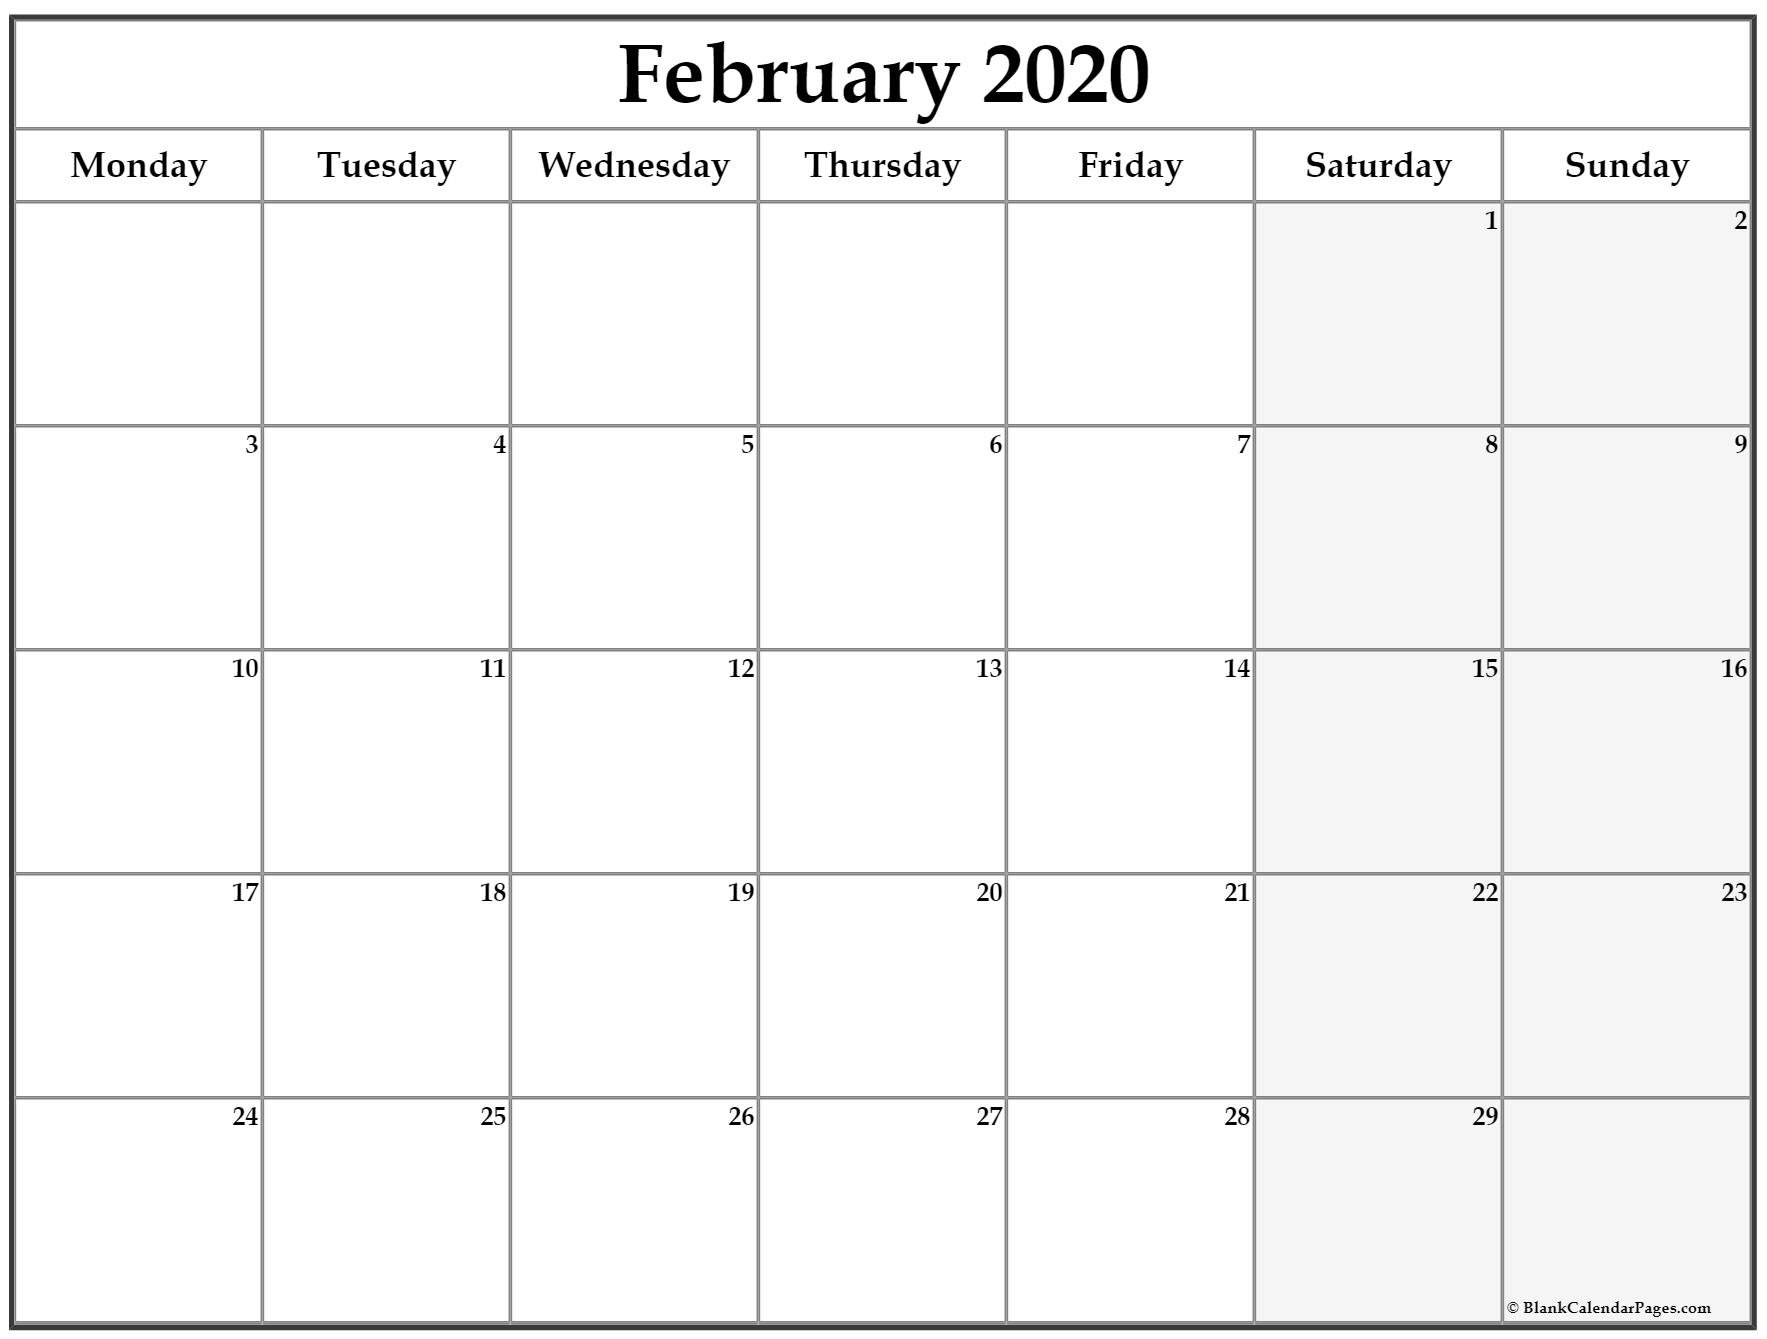 February 2020 Monday Calendar | Monday To Sunday Calendar Saturday To Friday